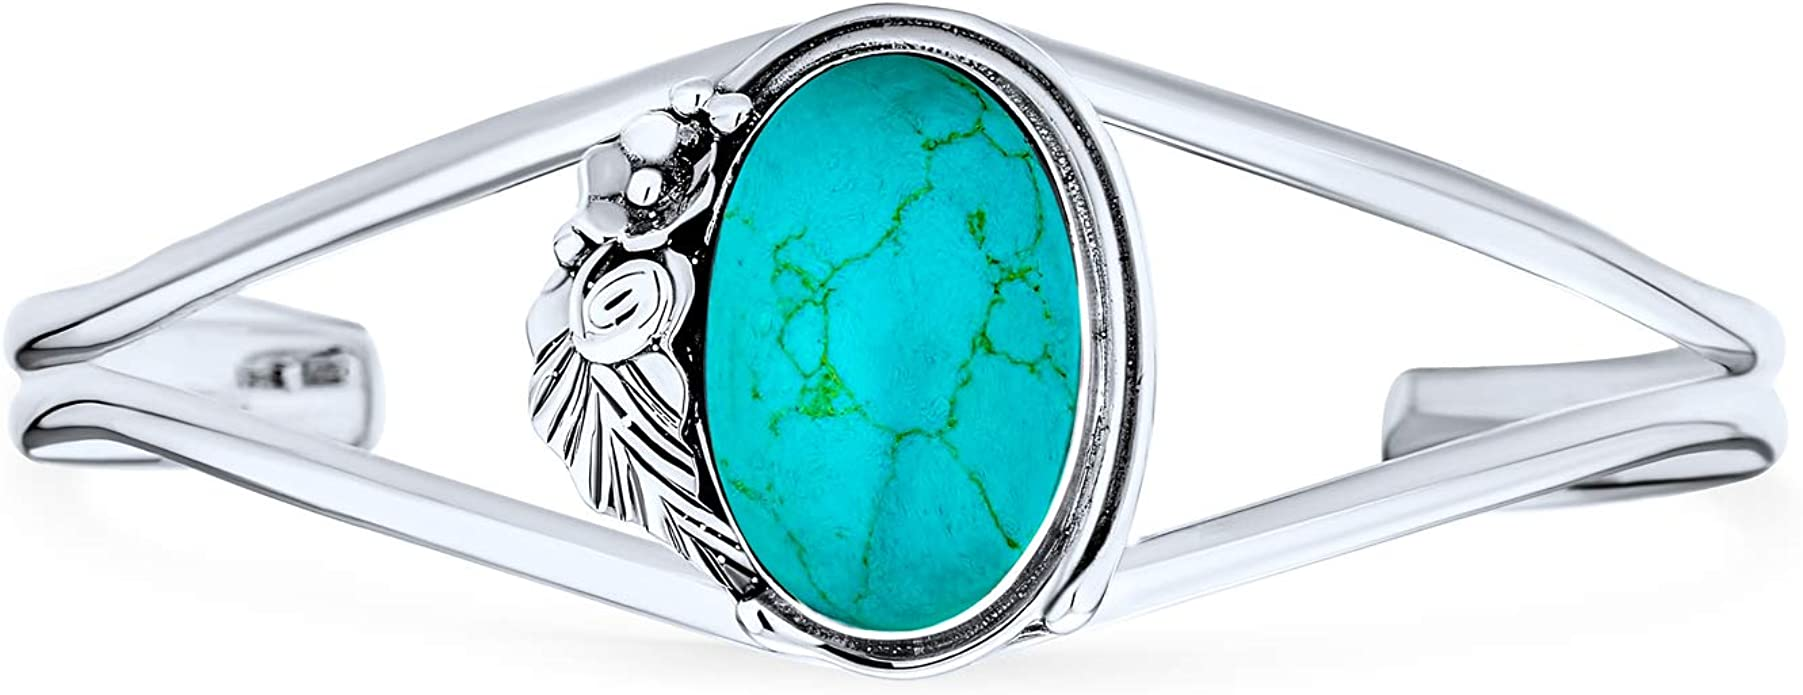 Trillion Shape American Turquoise Ring American Turquoise Silver Ring 925 Stamp Sterling Silver Ring Turquoise Stone Ring,SALE